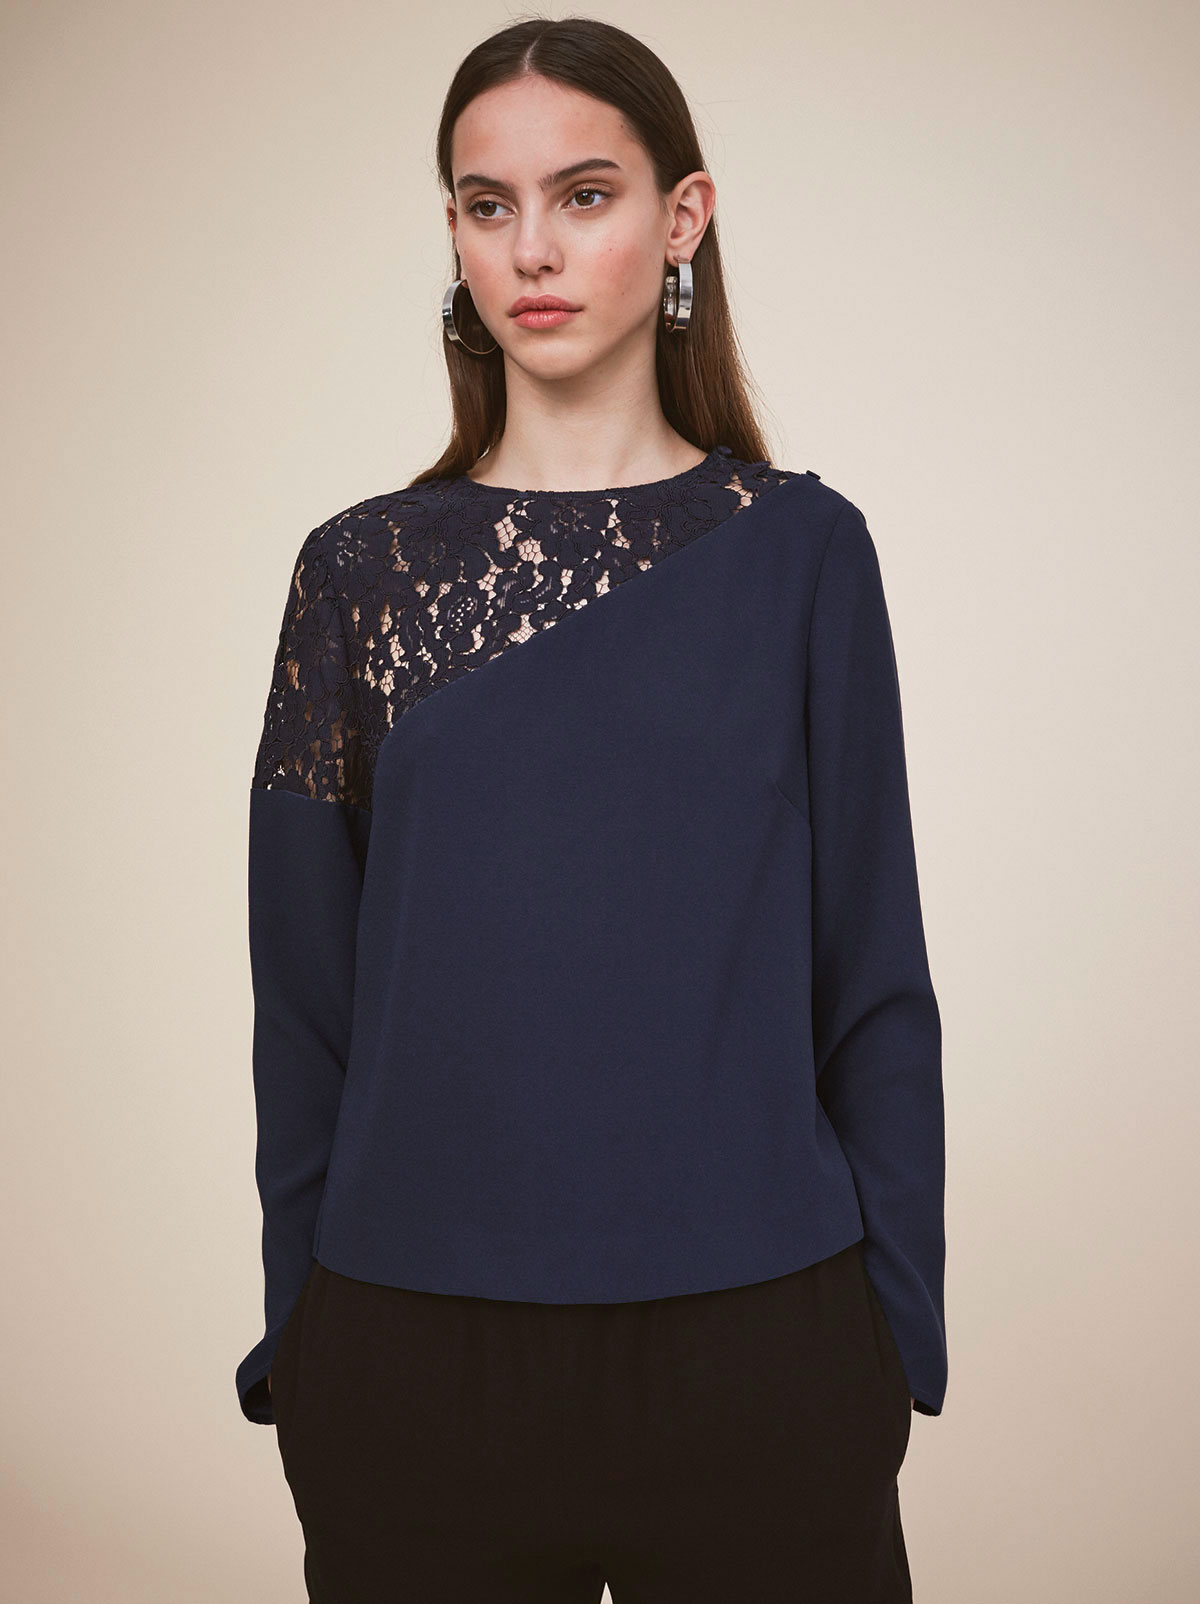 Deborah Navy Lace Panel Women's Top by KITRI Studio